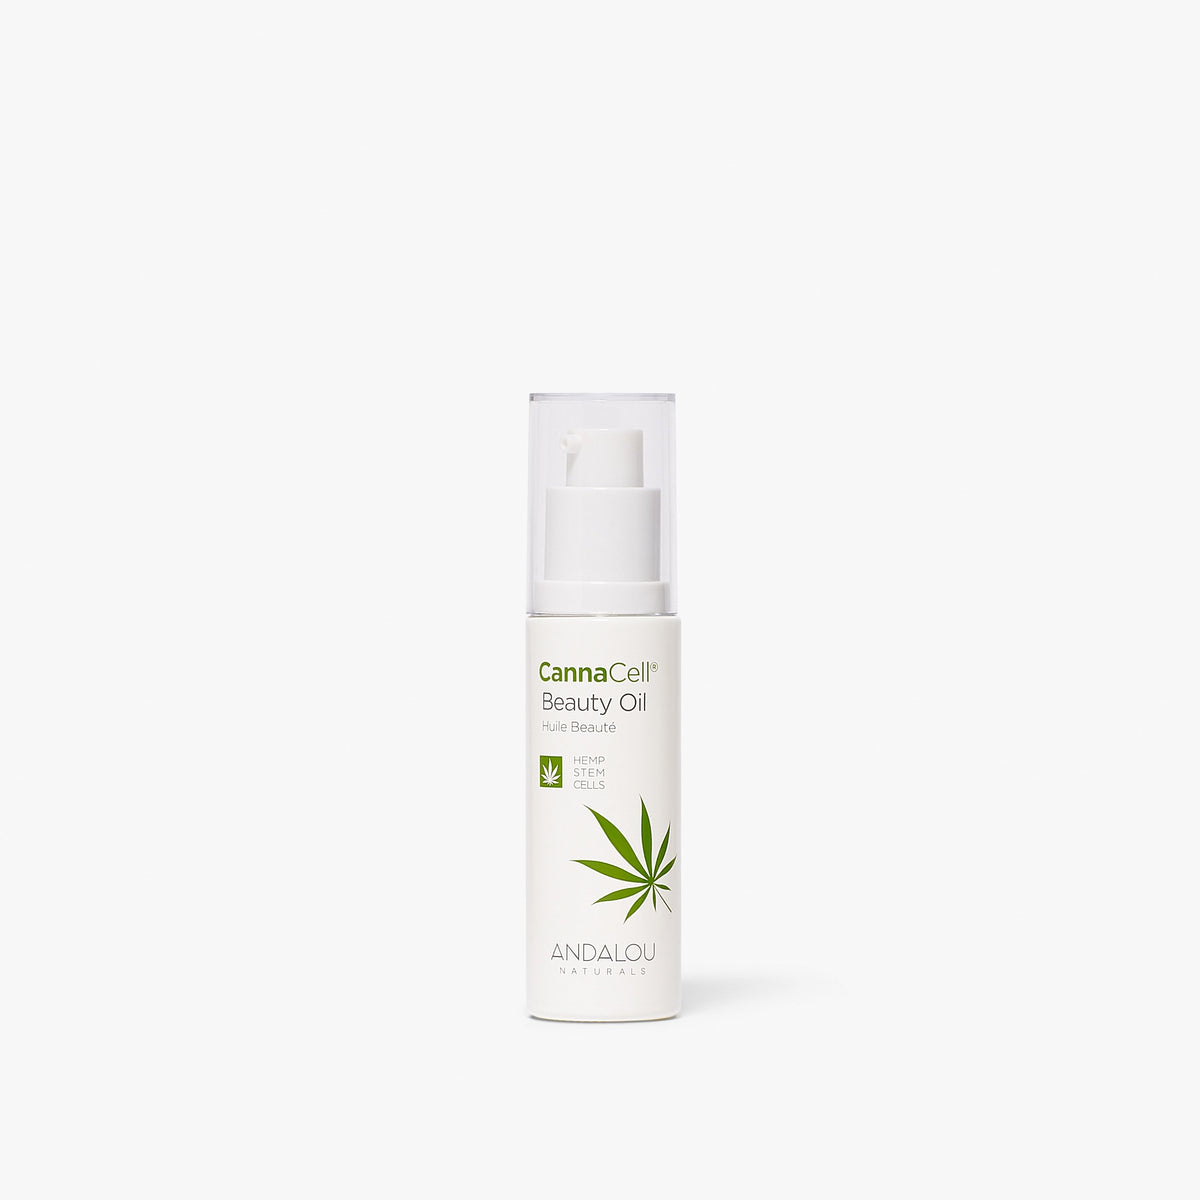 CannaCell Beauty Oil - Andalou Naturals US